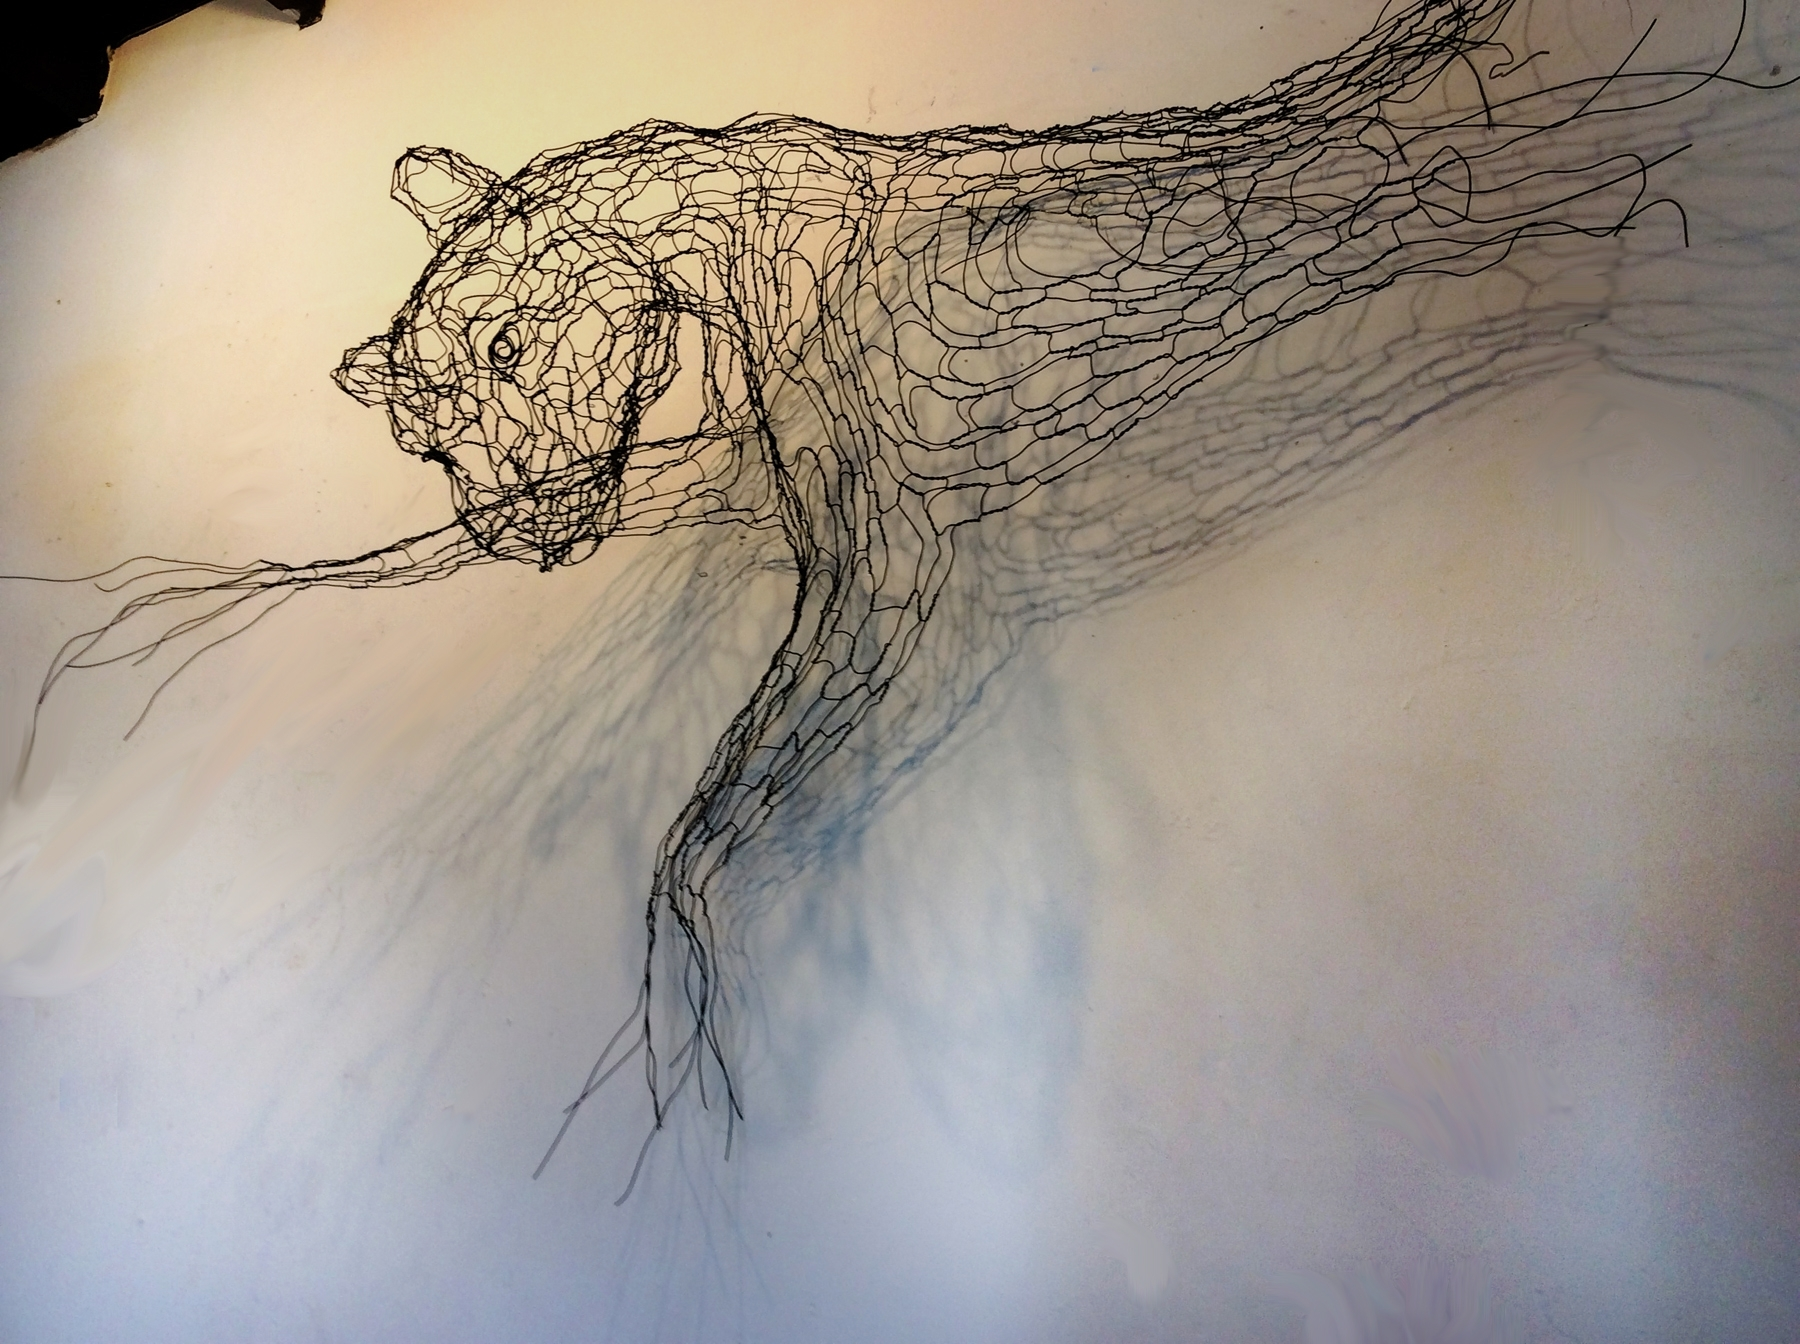 Wire Wall Art | Wire Sculpture And Illustration Within Most Up To Date Wire Wall Art (View 13 of 20)